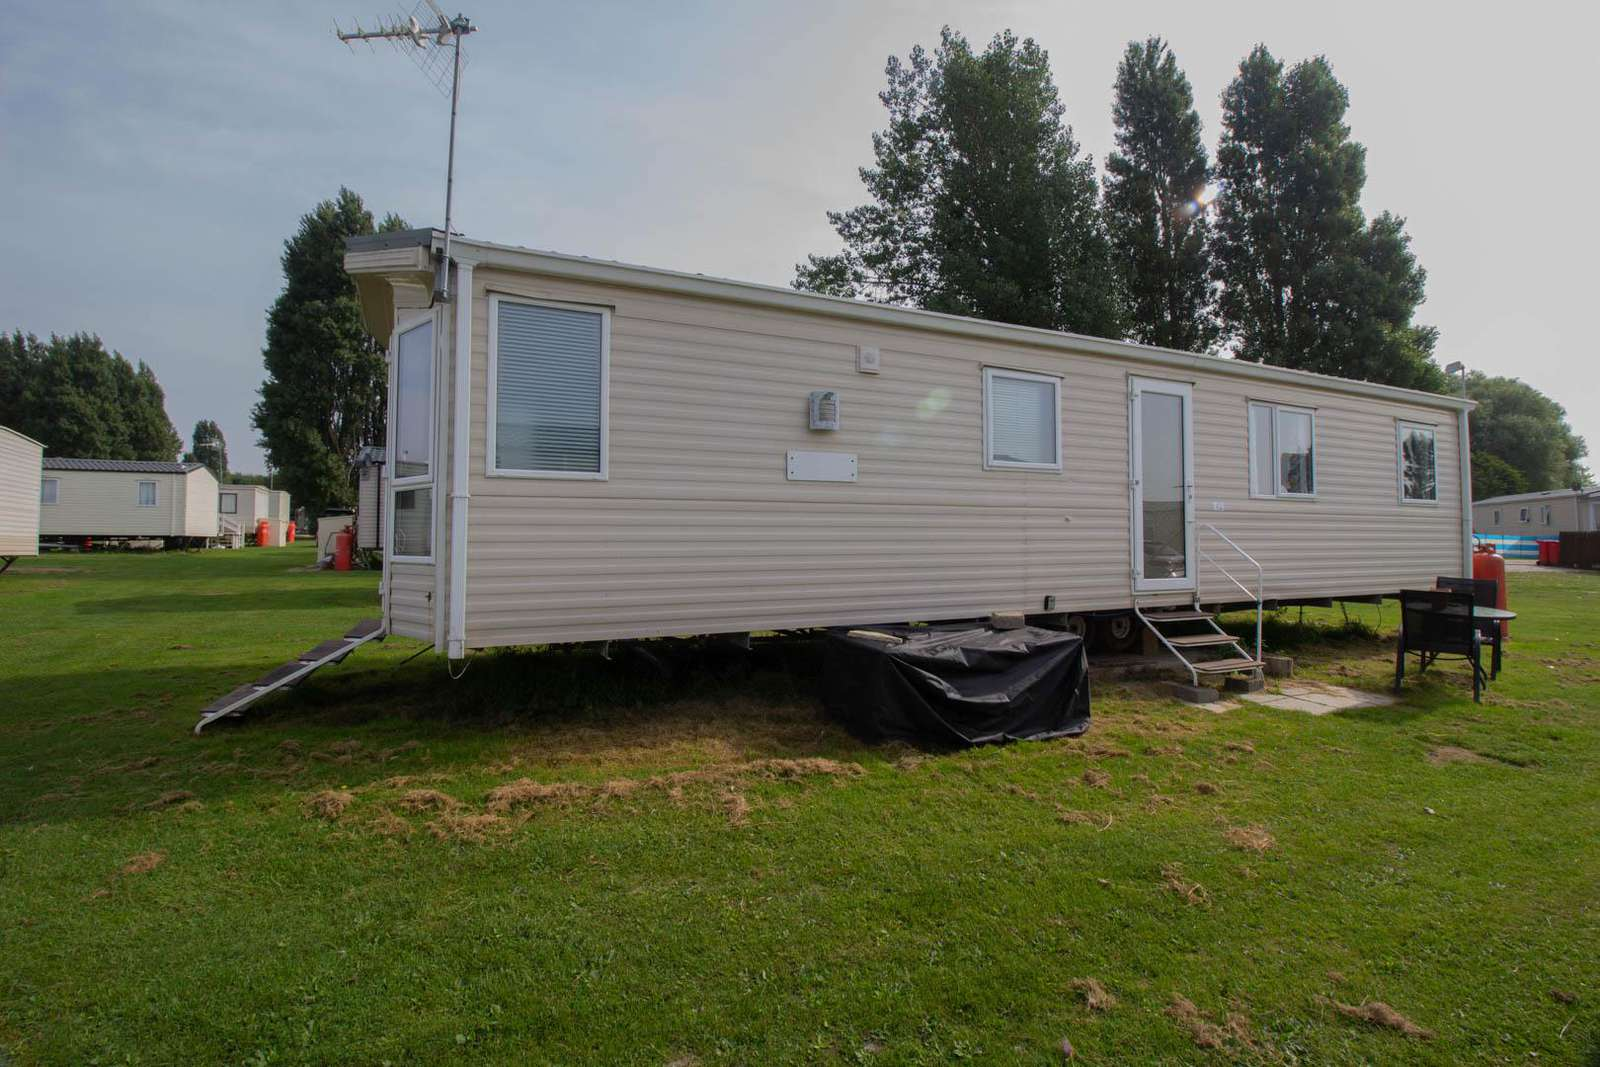 49042S – Swallows area, 3 bed, 8 berth caravan with D/G & C/H. Diamond rated. - property